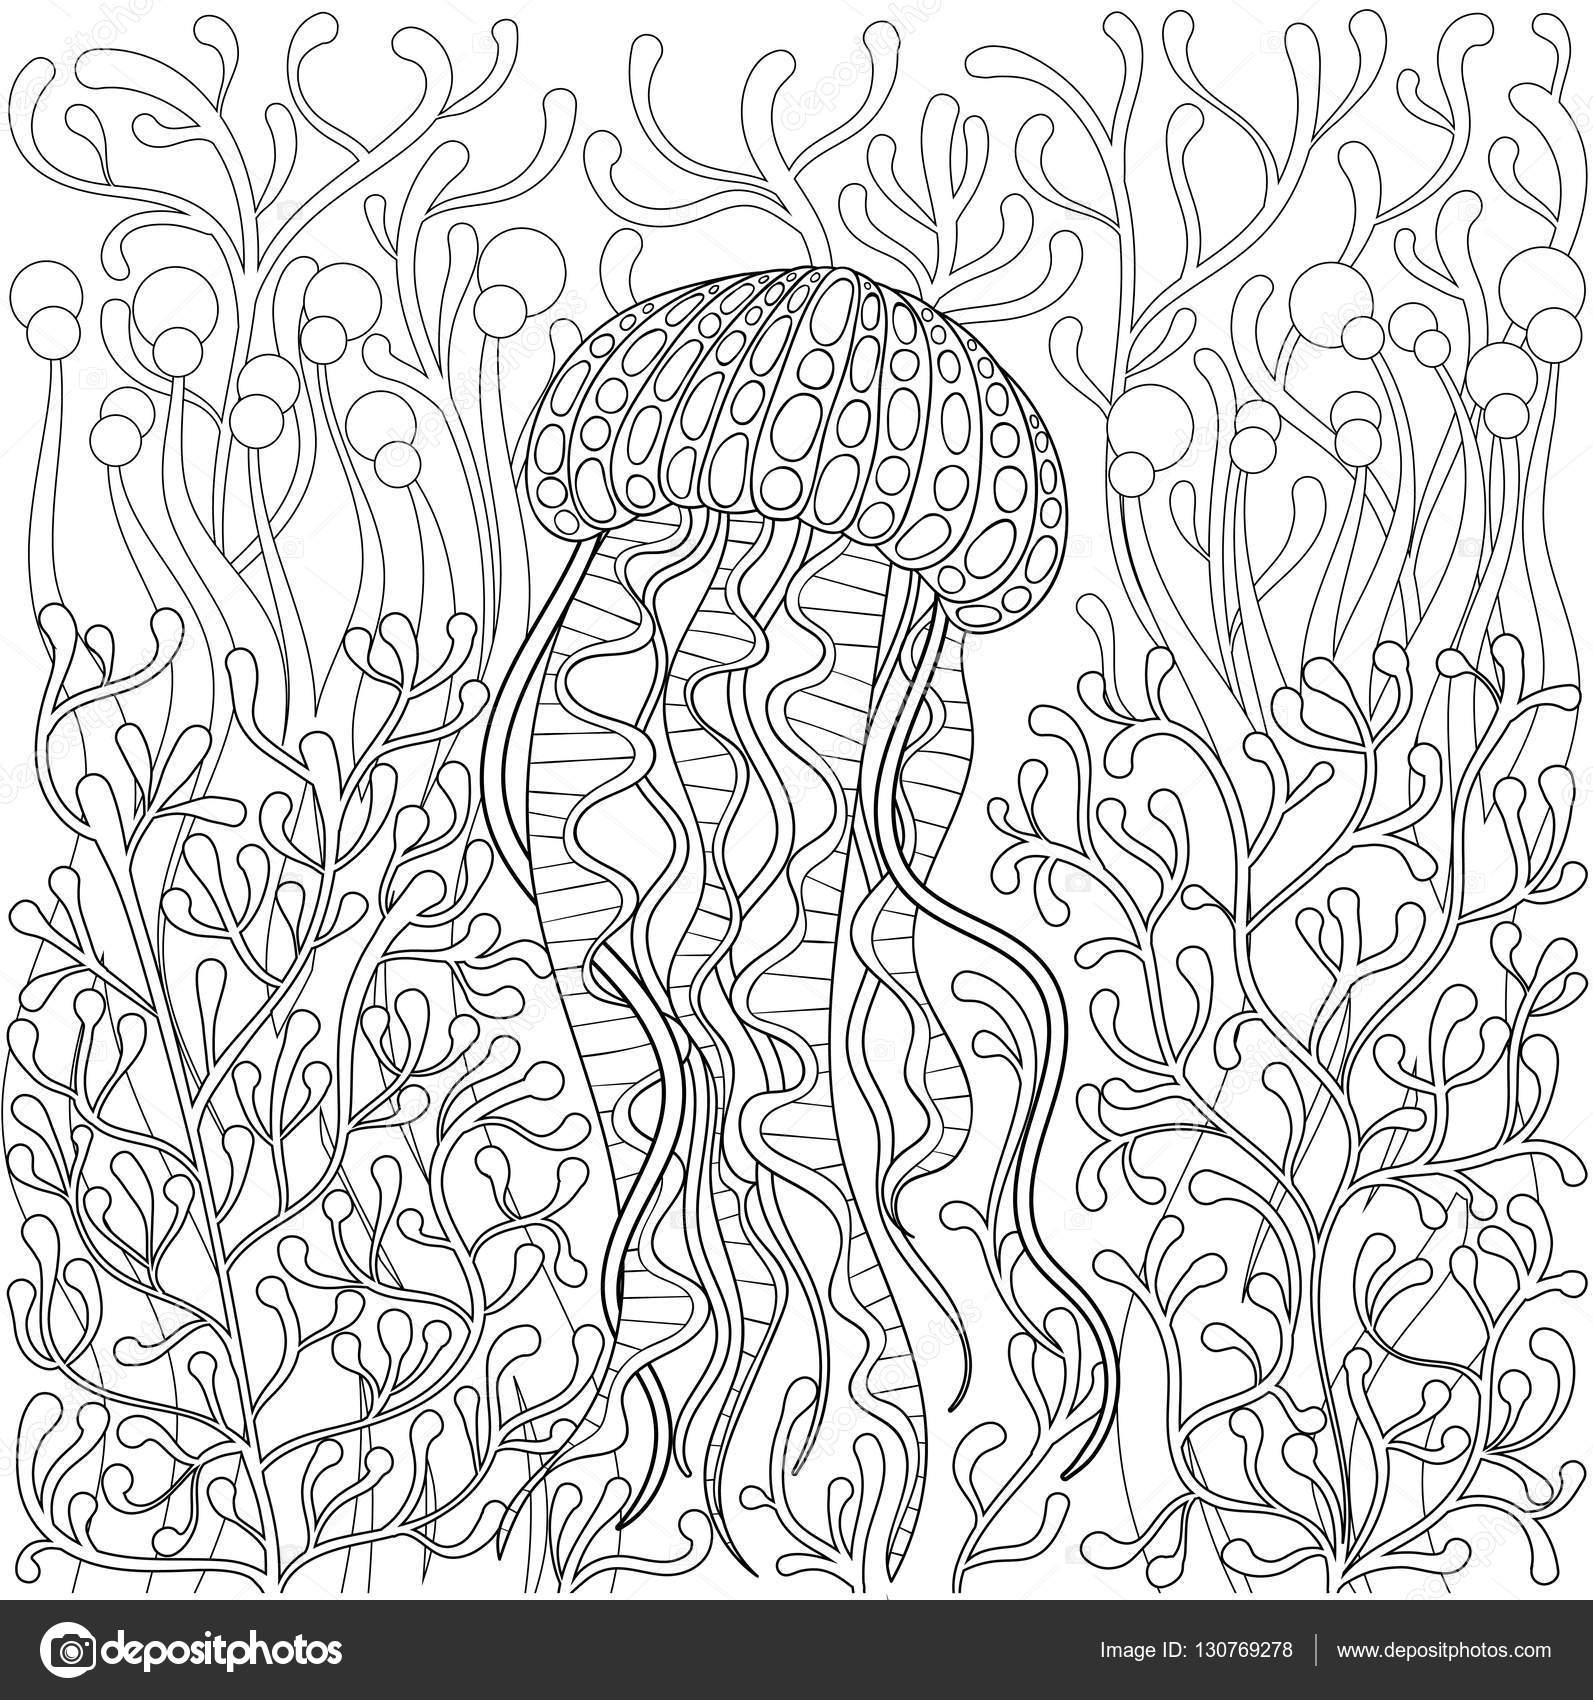 vector jellyfish medusa in zentangle style hand drawn sea animal